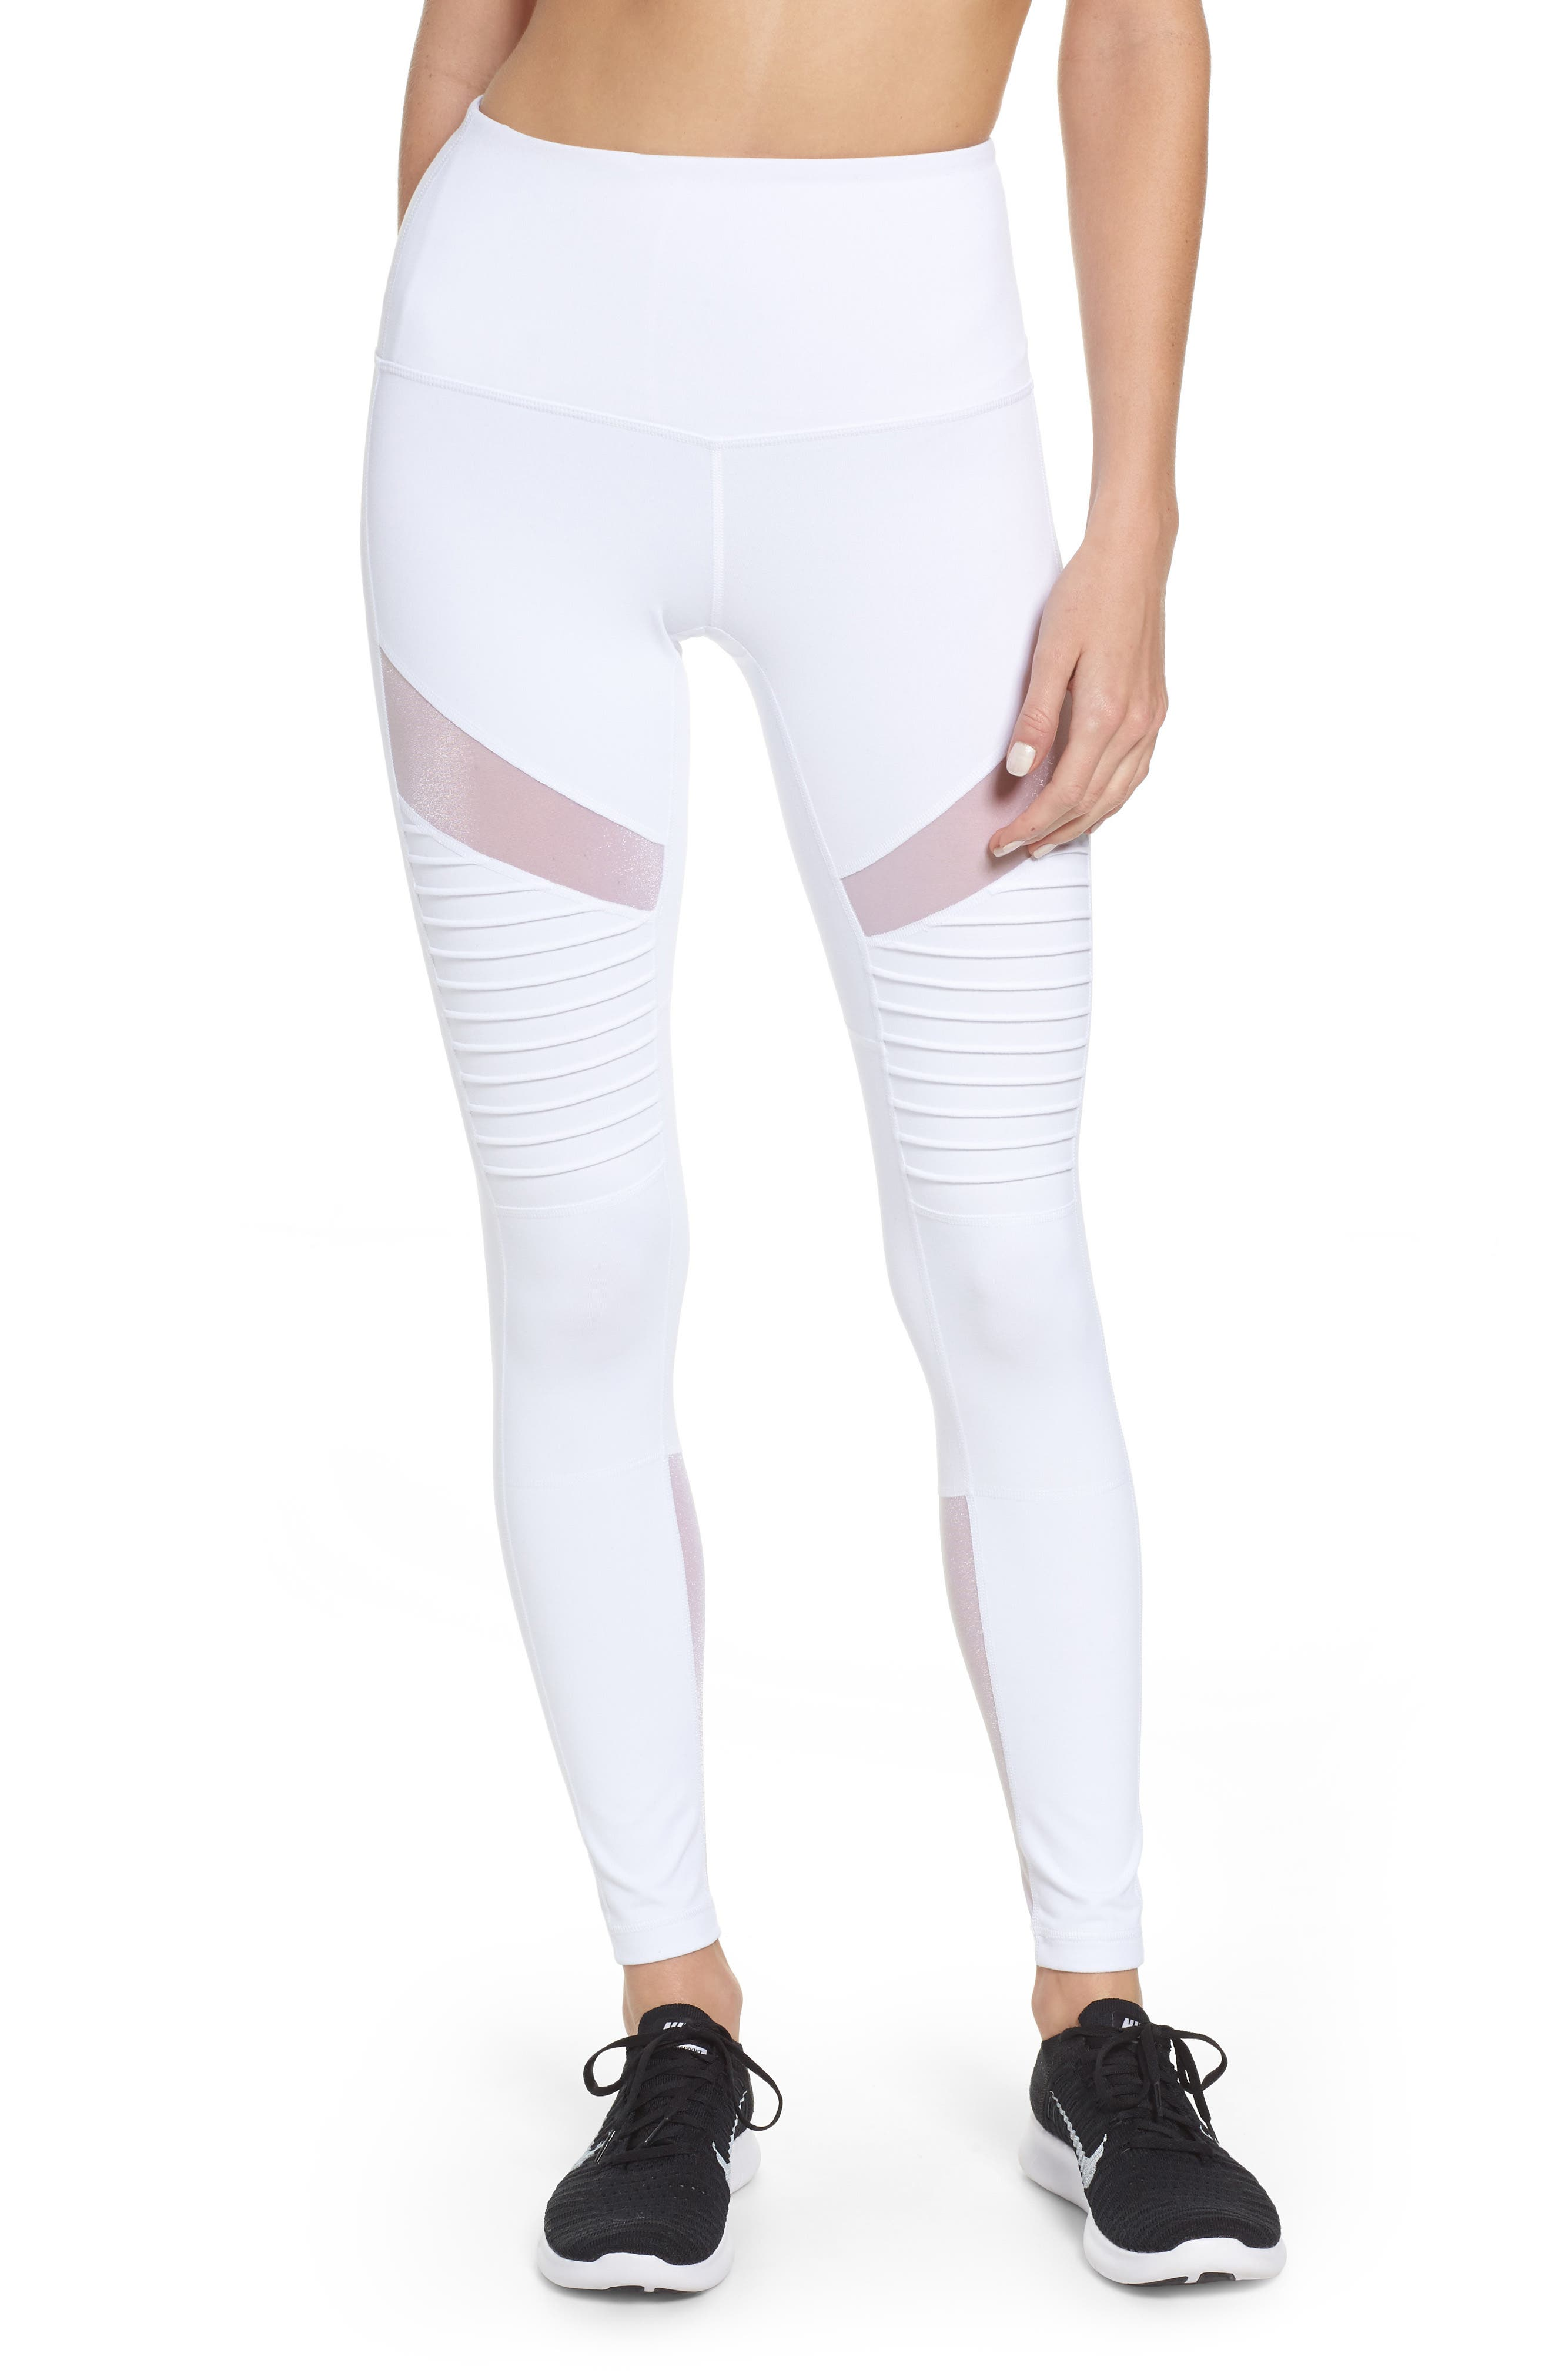 Alternate Image 1 Selected - Zella Autumn High Waist Moto Ankle Leggings